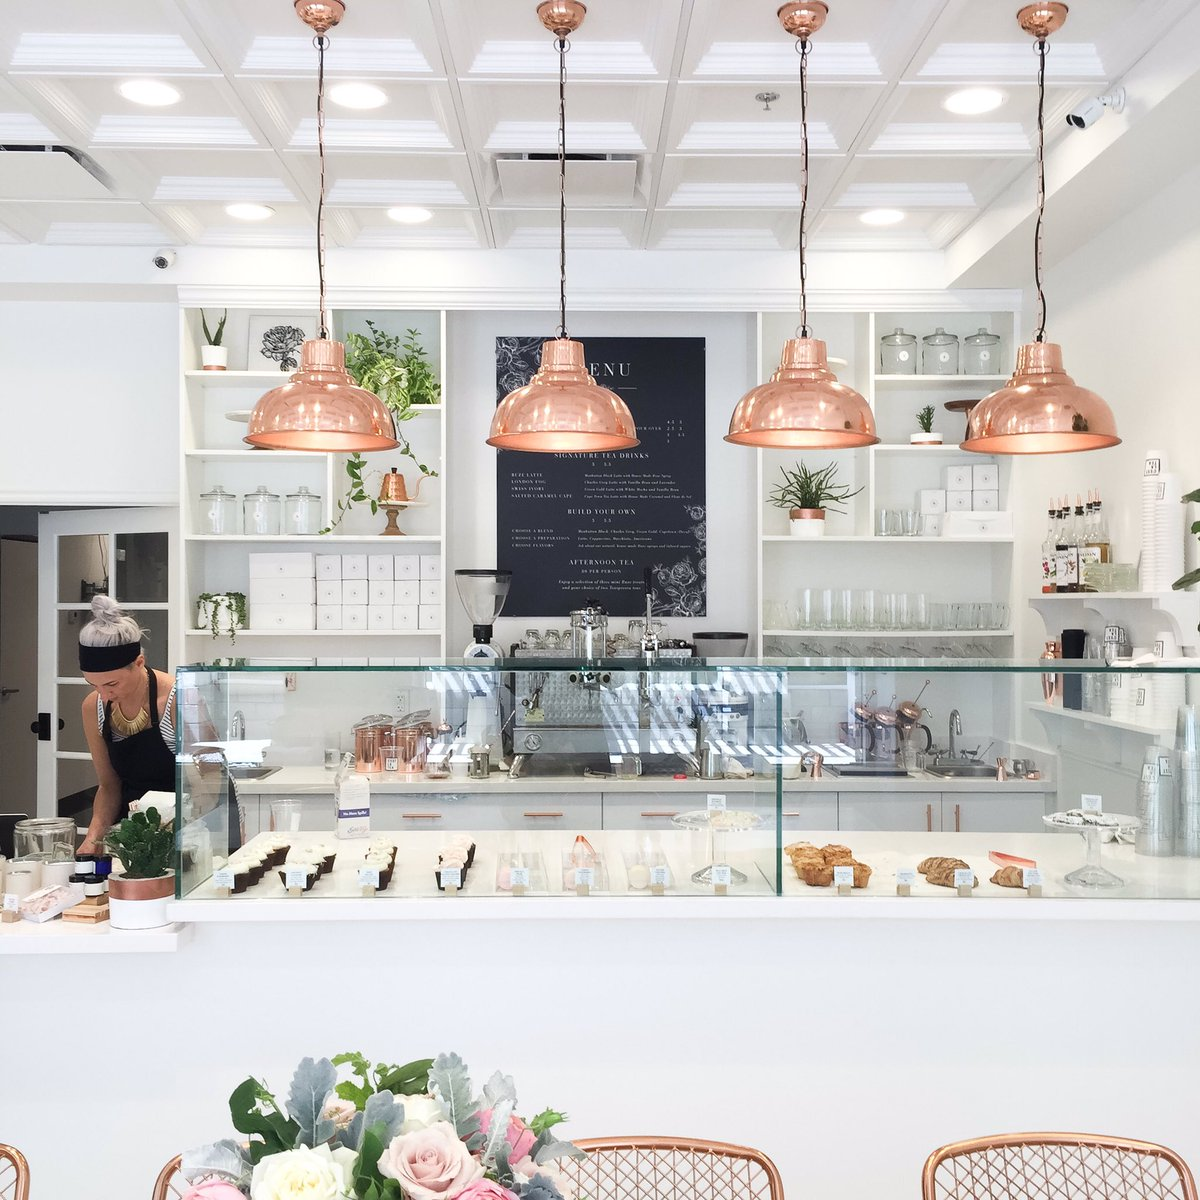 New amazing bakery in #Scottsdale! Congrats on your opening @ruzecakehouse + @teaspressa!